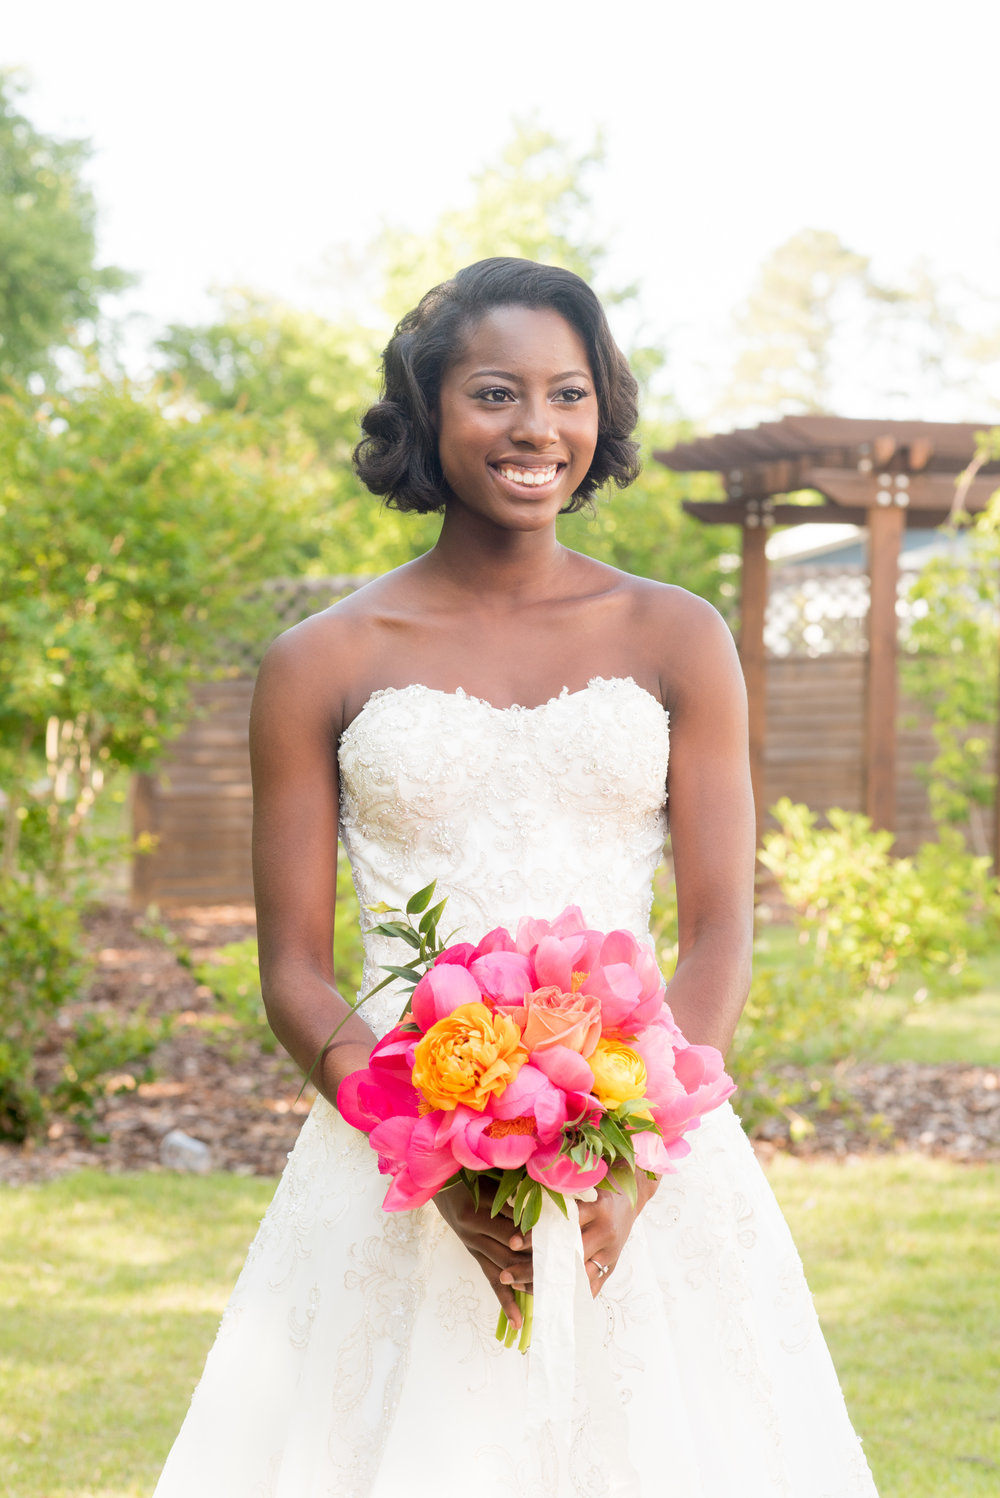 mikkelpaige-the_bradford_raleigh-wedding-coral_styled_shoot-095.jpg